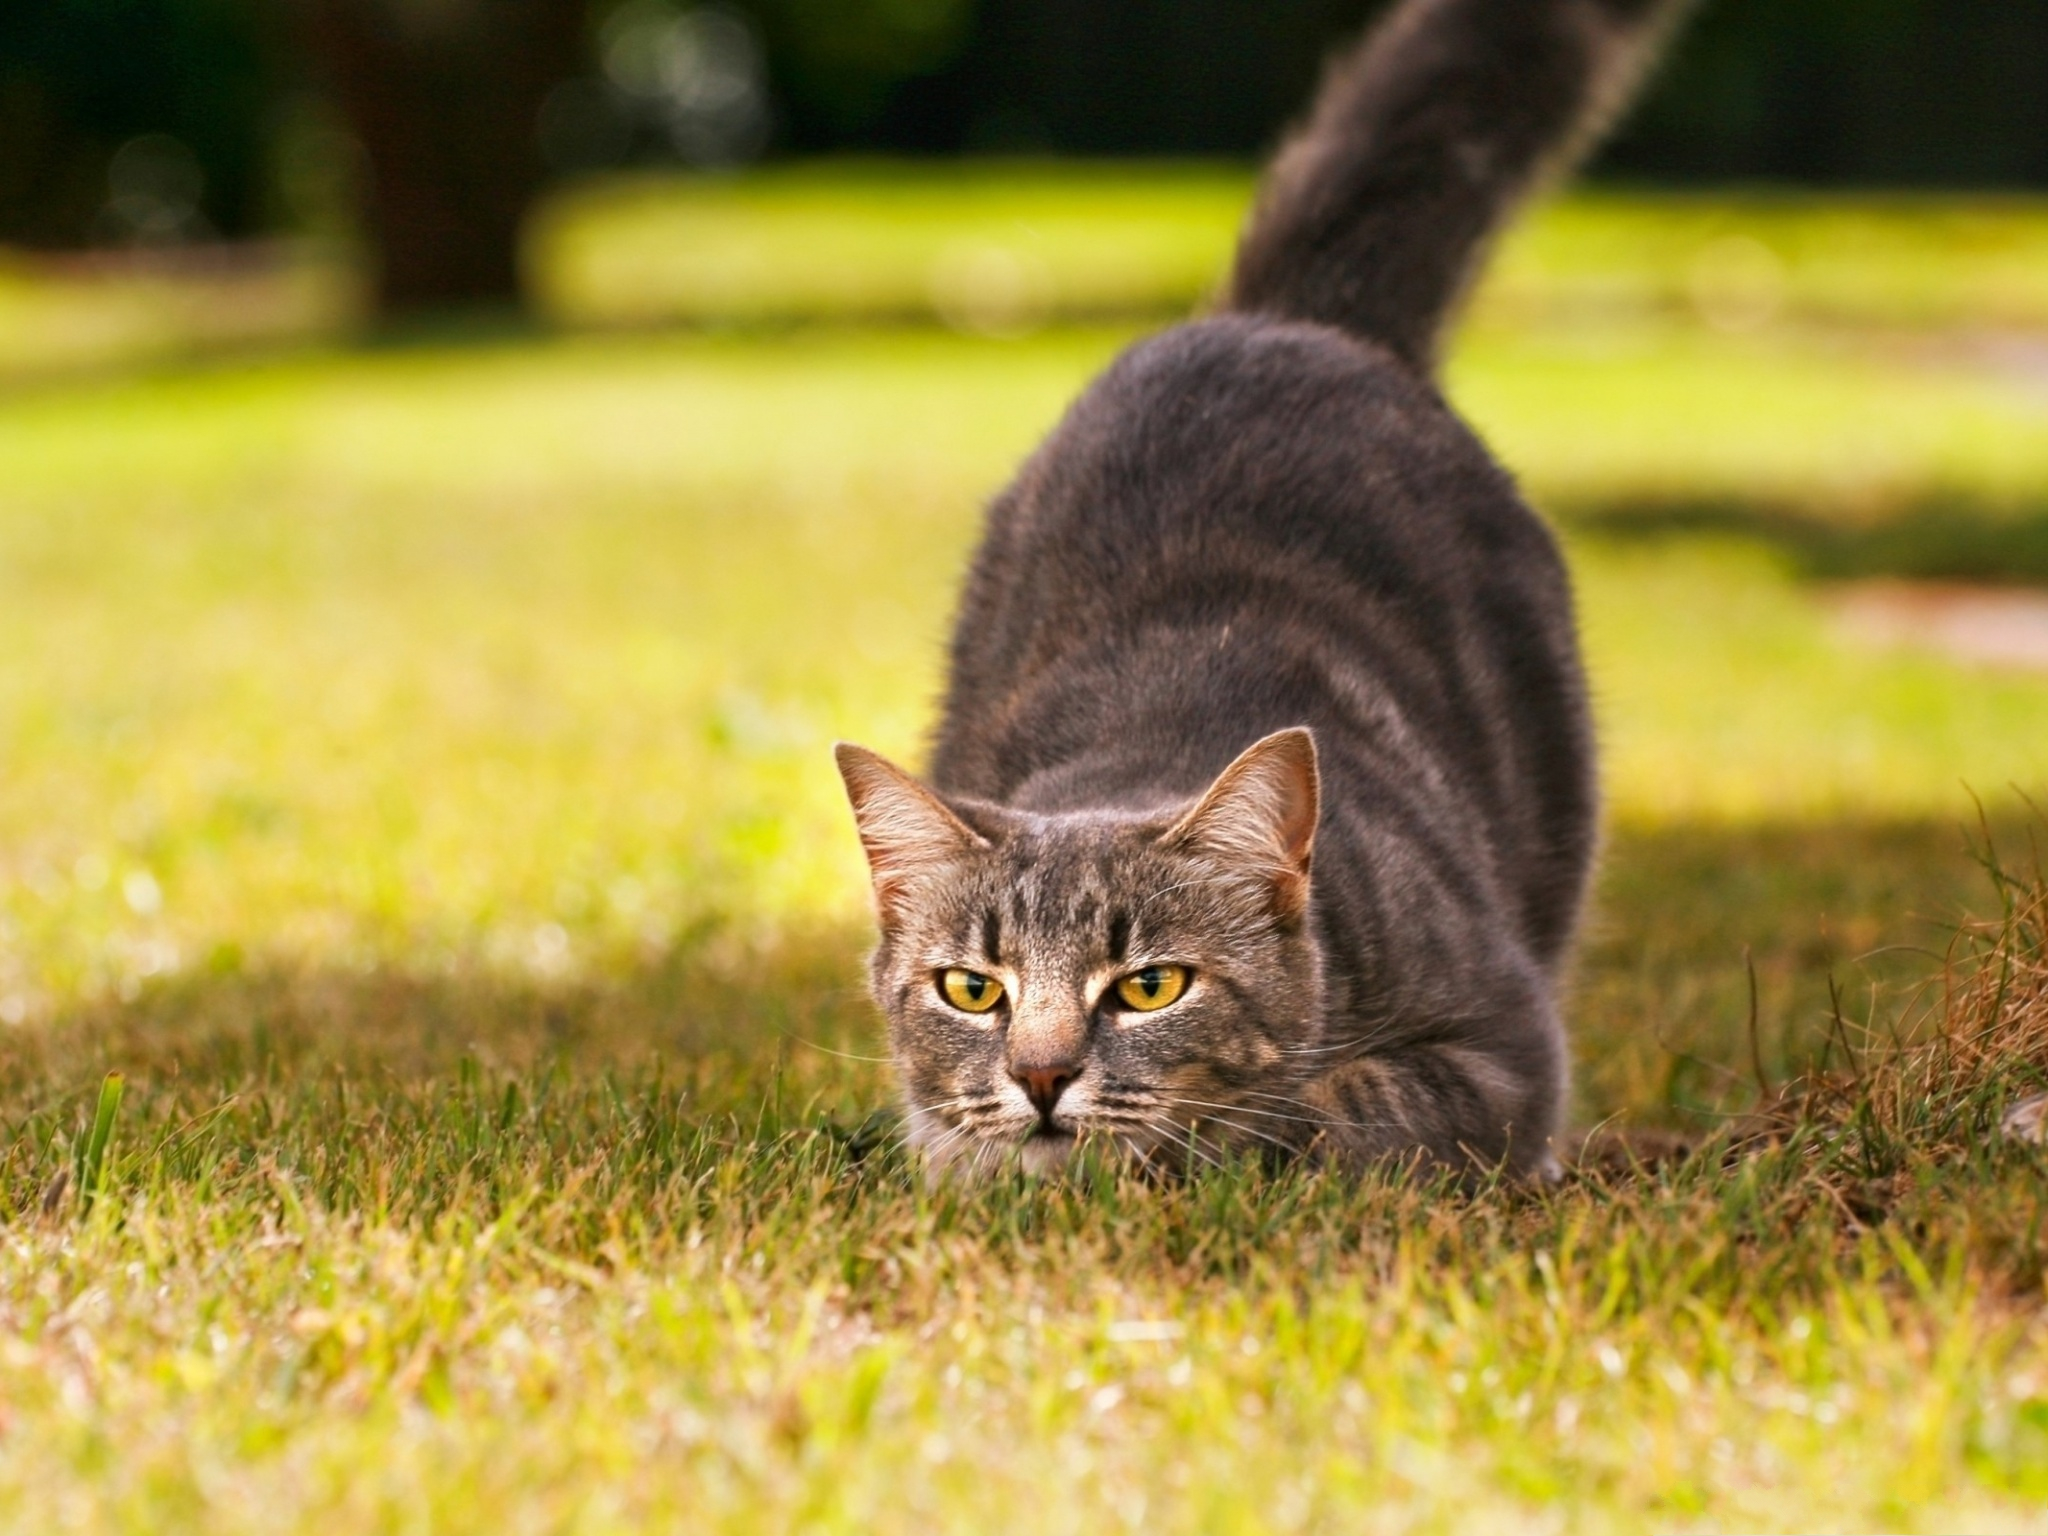 click to free download the wallpaper--Playful Cat Photo, Curled Up Body, Stay on Green Grass, Start Out in a Rush 2048X1536 free wallpaper download